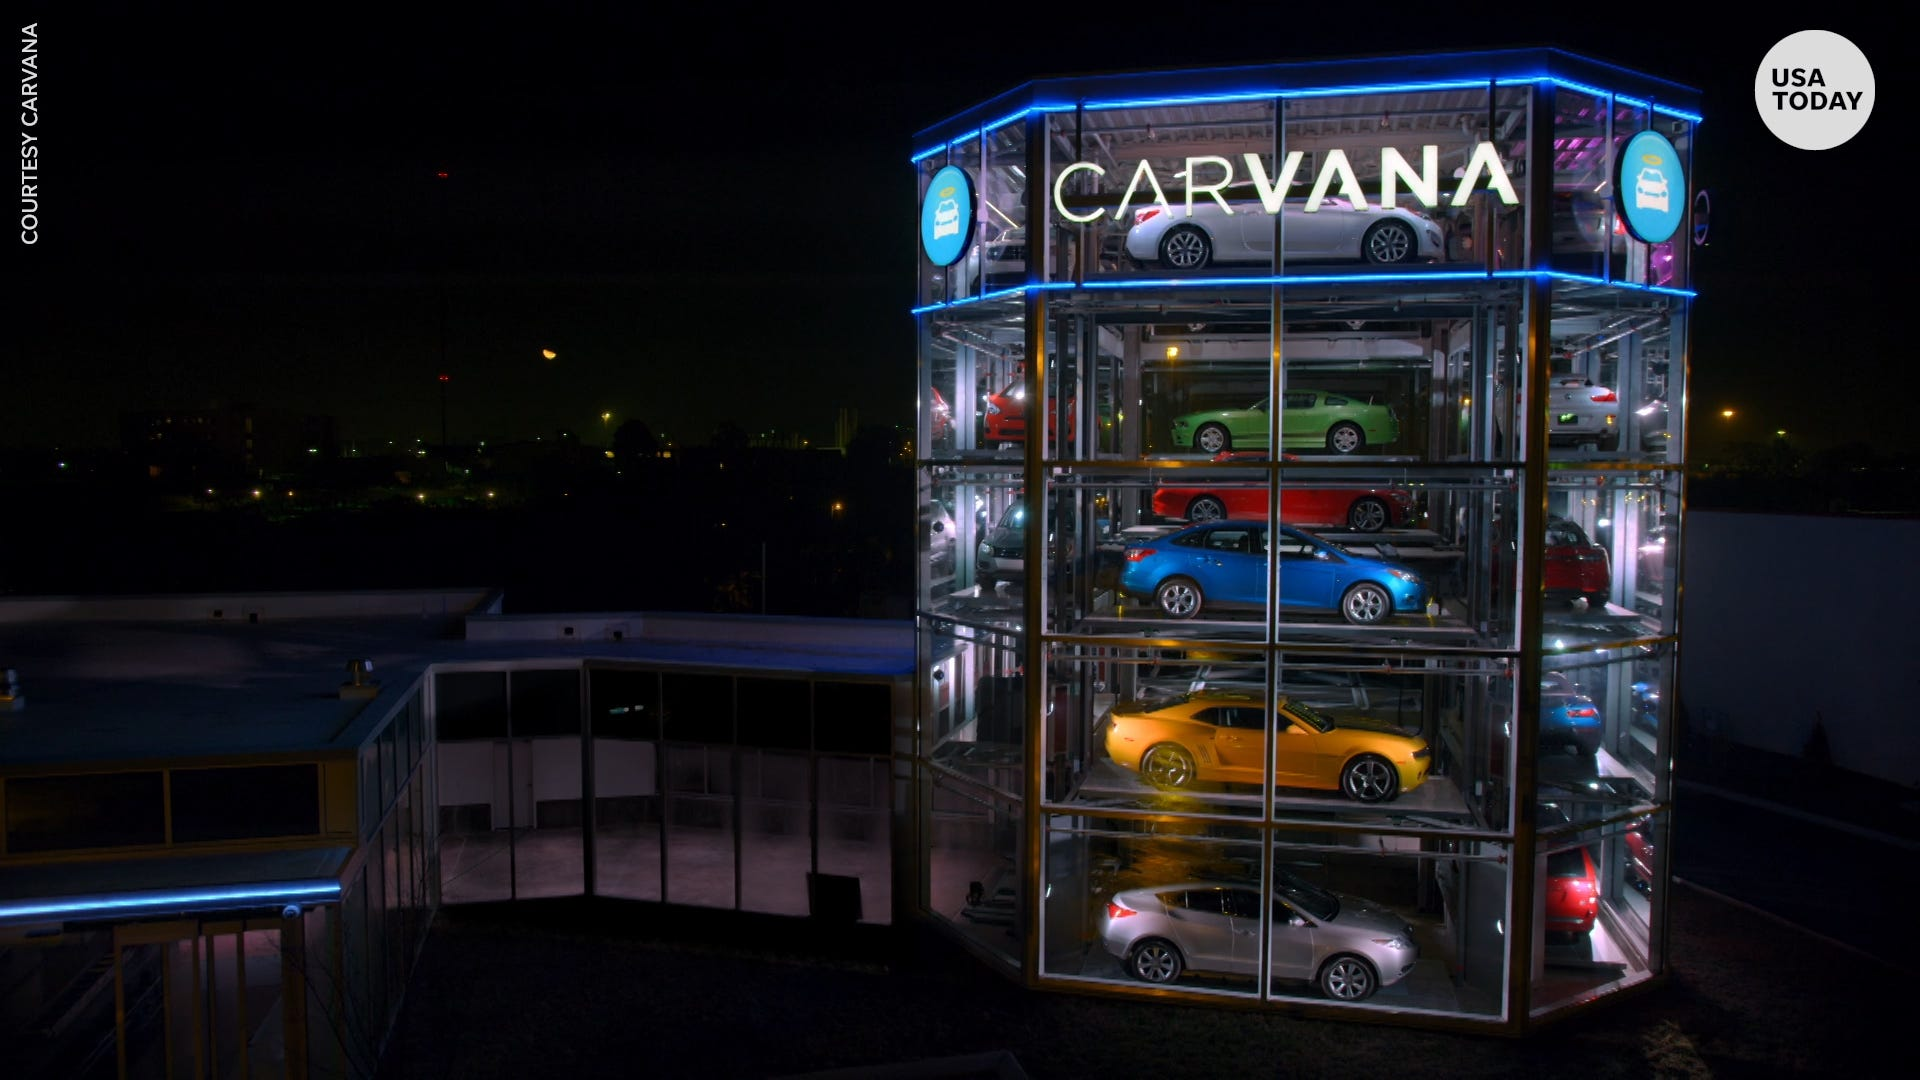 Carvana's new Car Vending Machine is the tallest in the country at 12 stories high